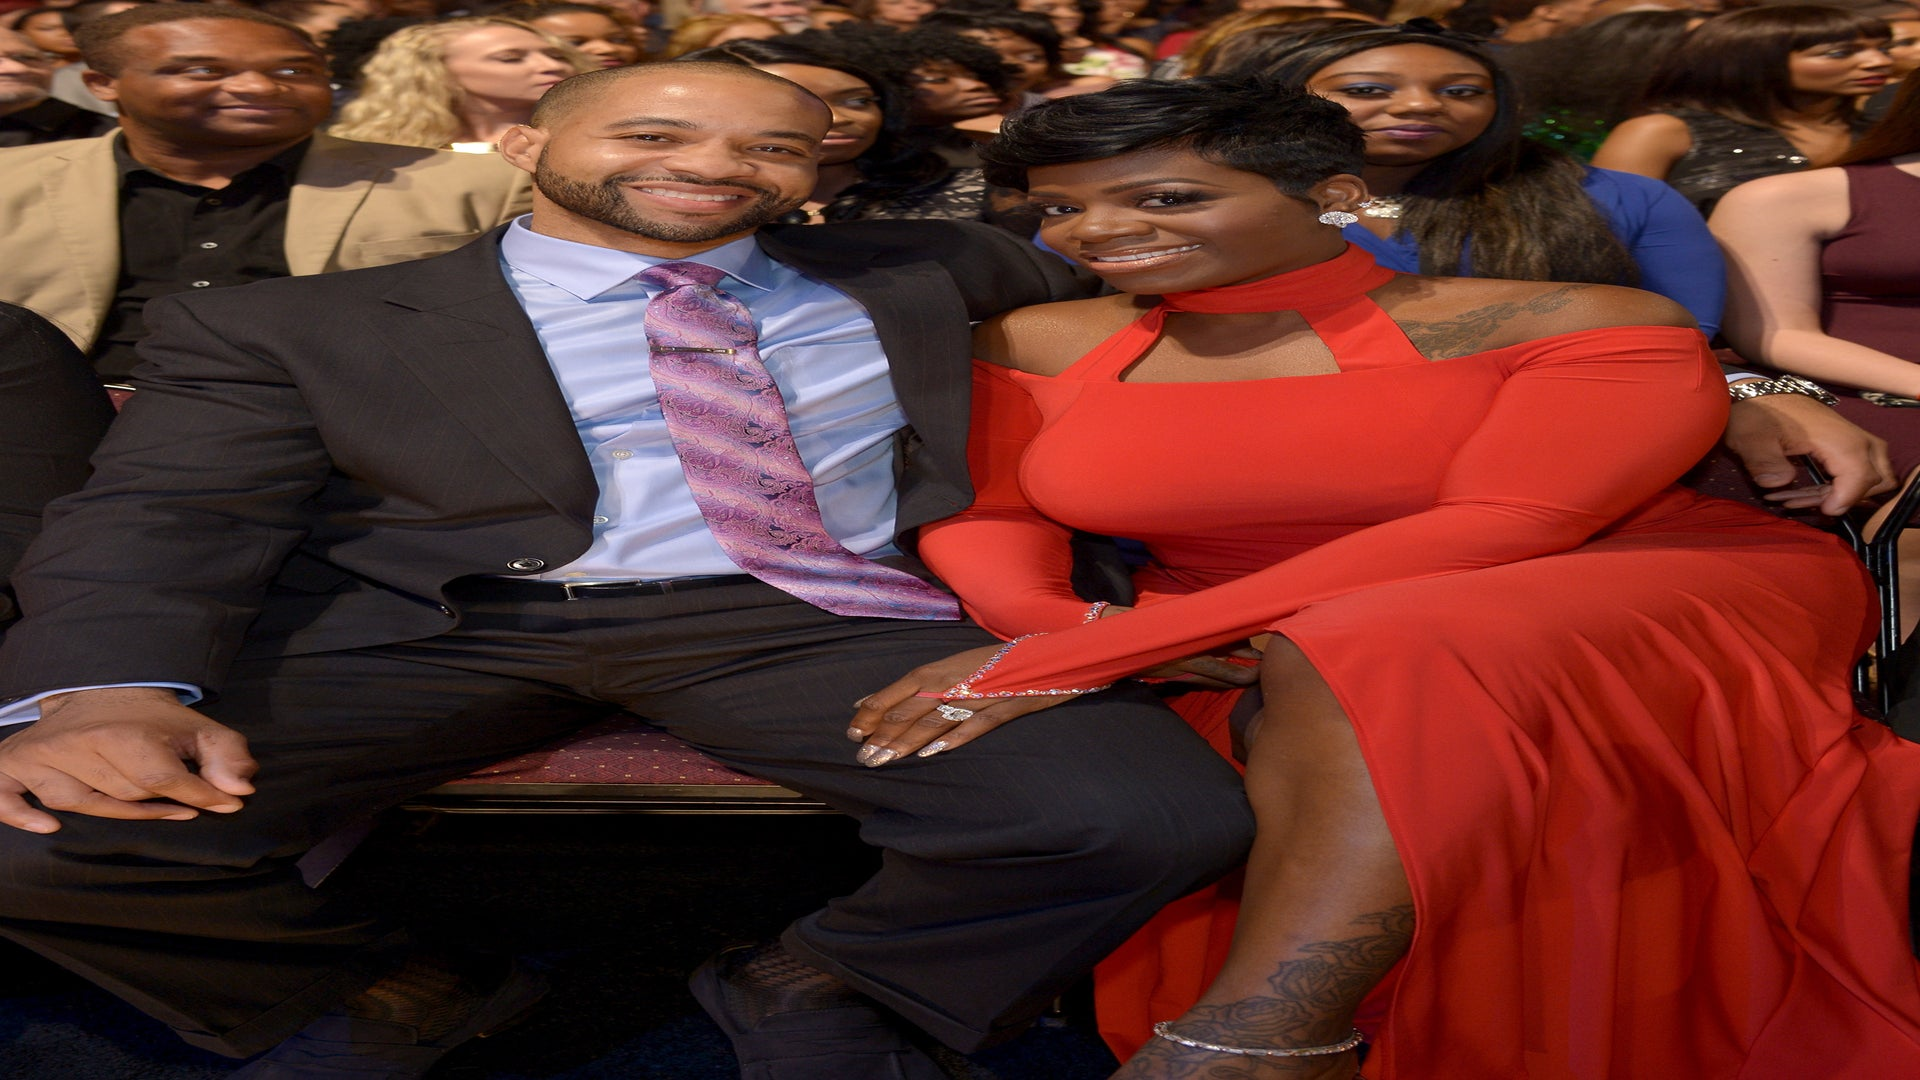 Aww! Fantasia and Her Husband Got Married Again On Christmas Day